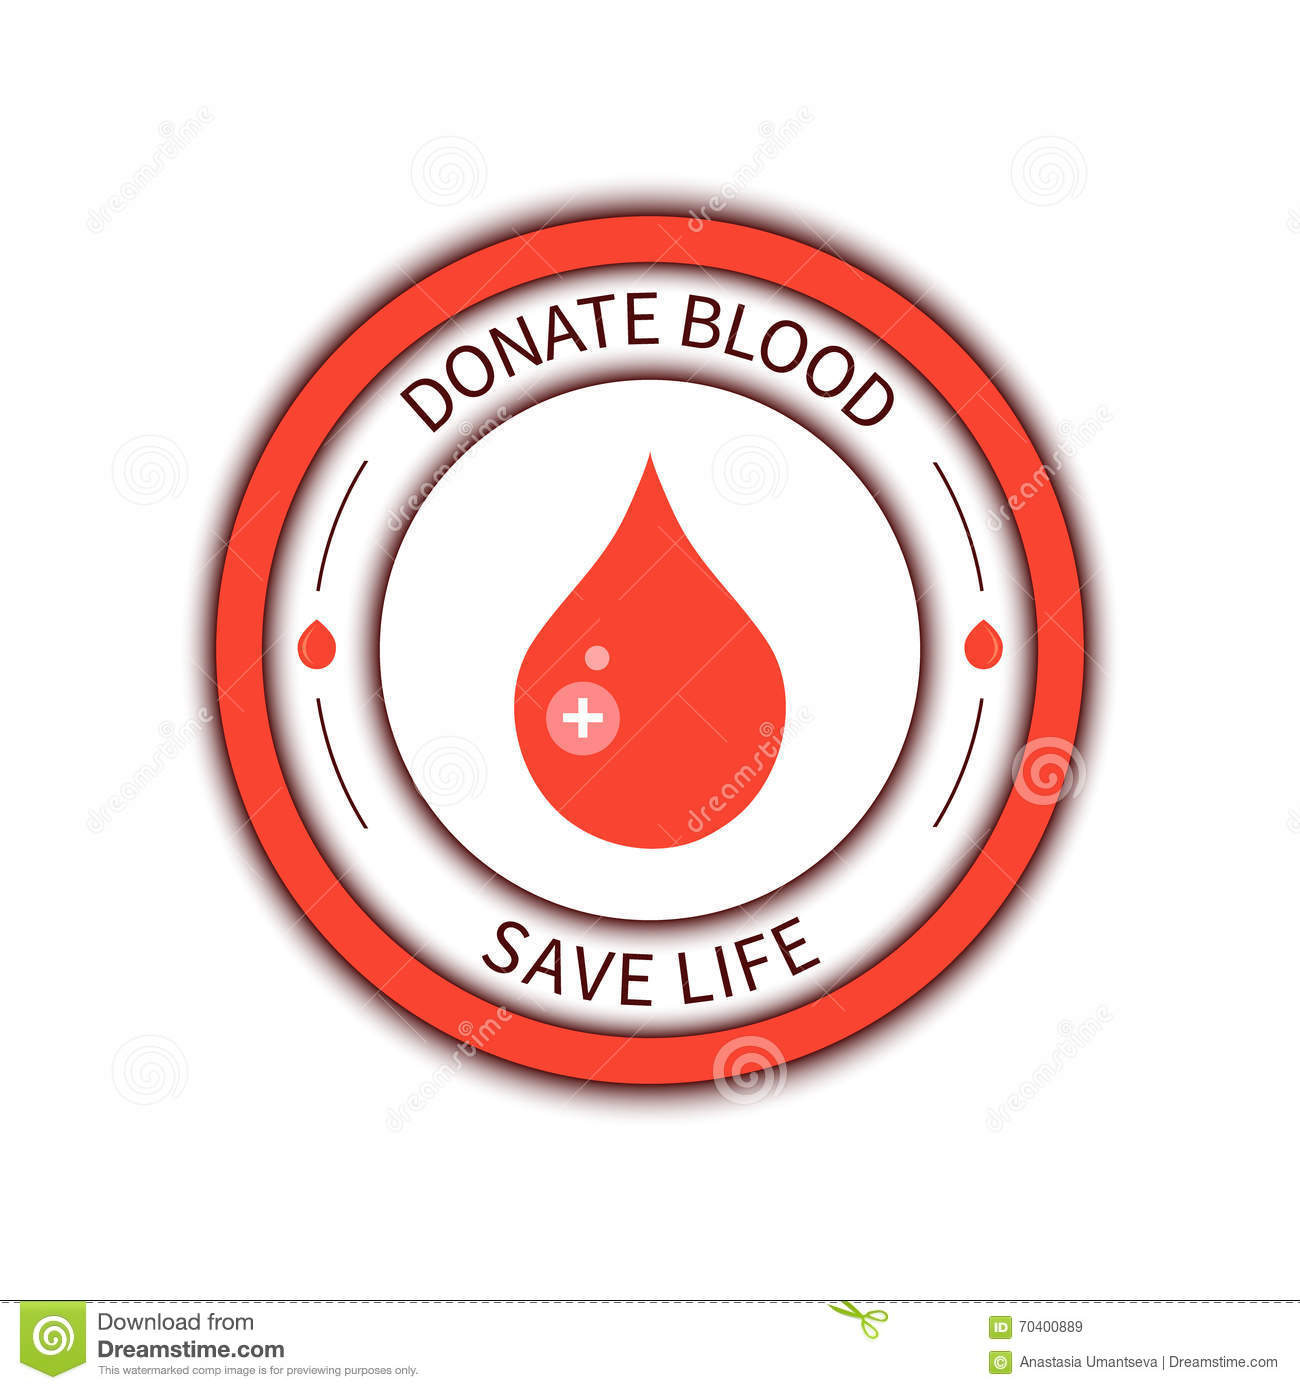 Poster design on blood donation - Blood Donation Poster Royalty Free Stock Images